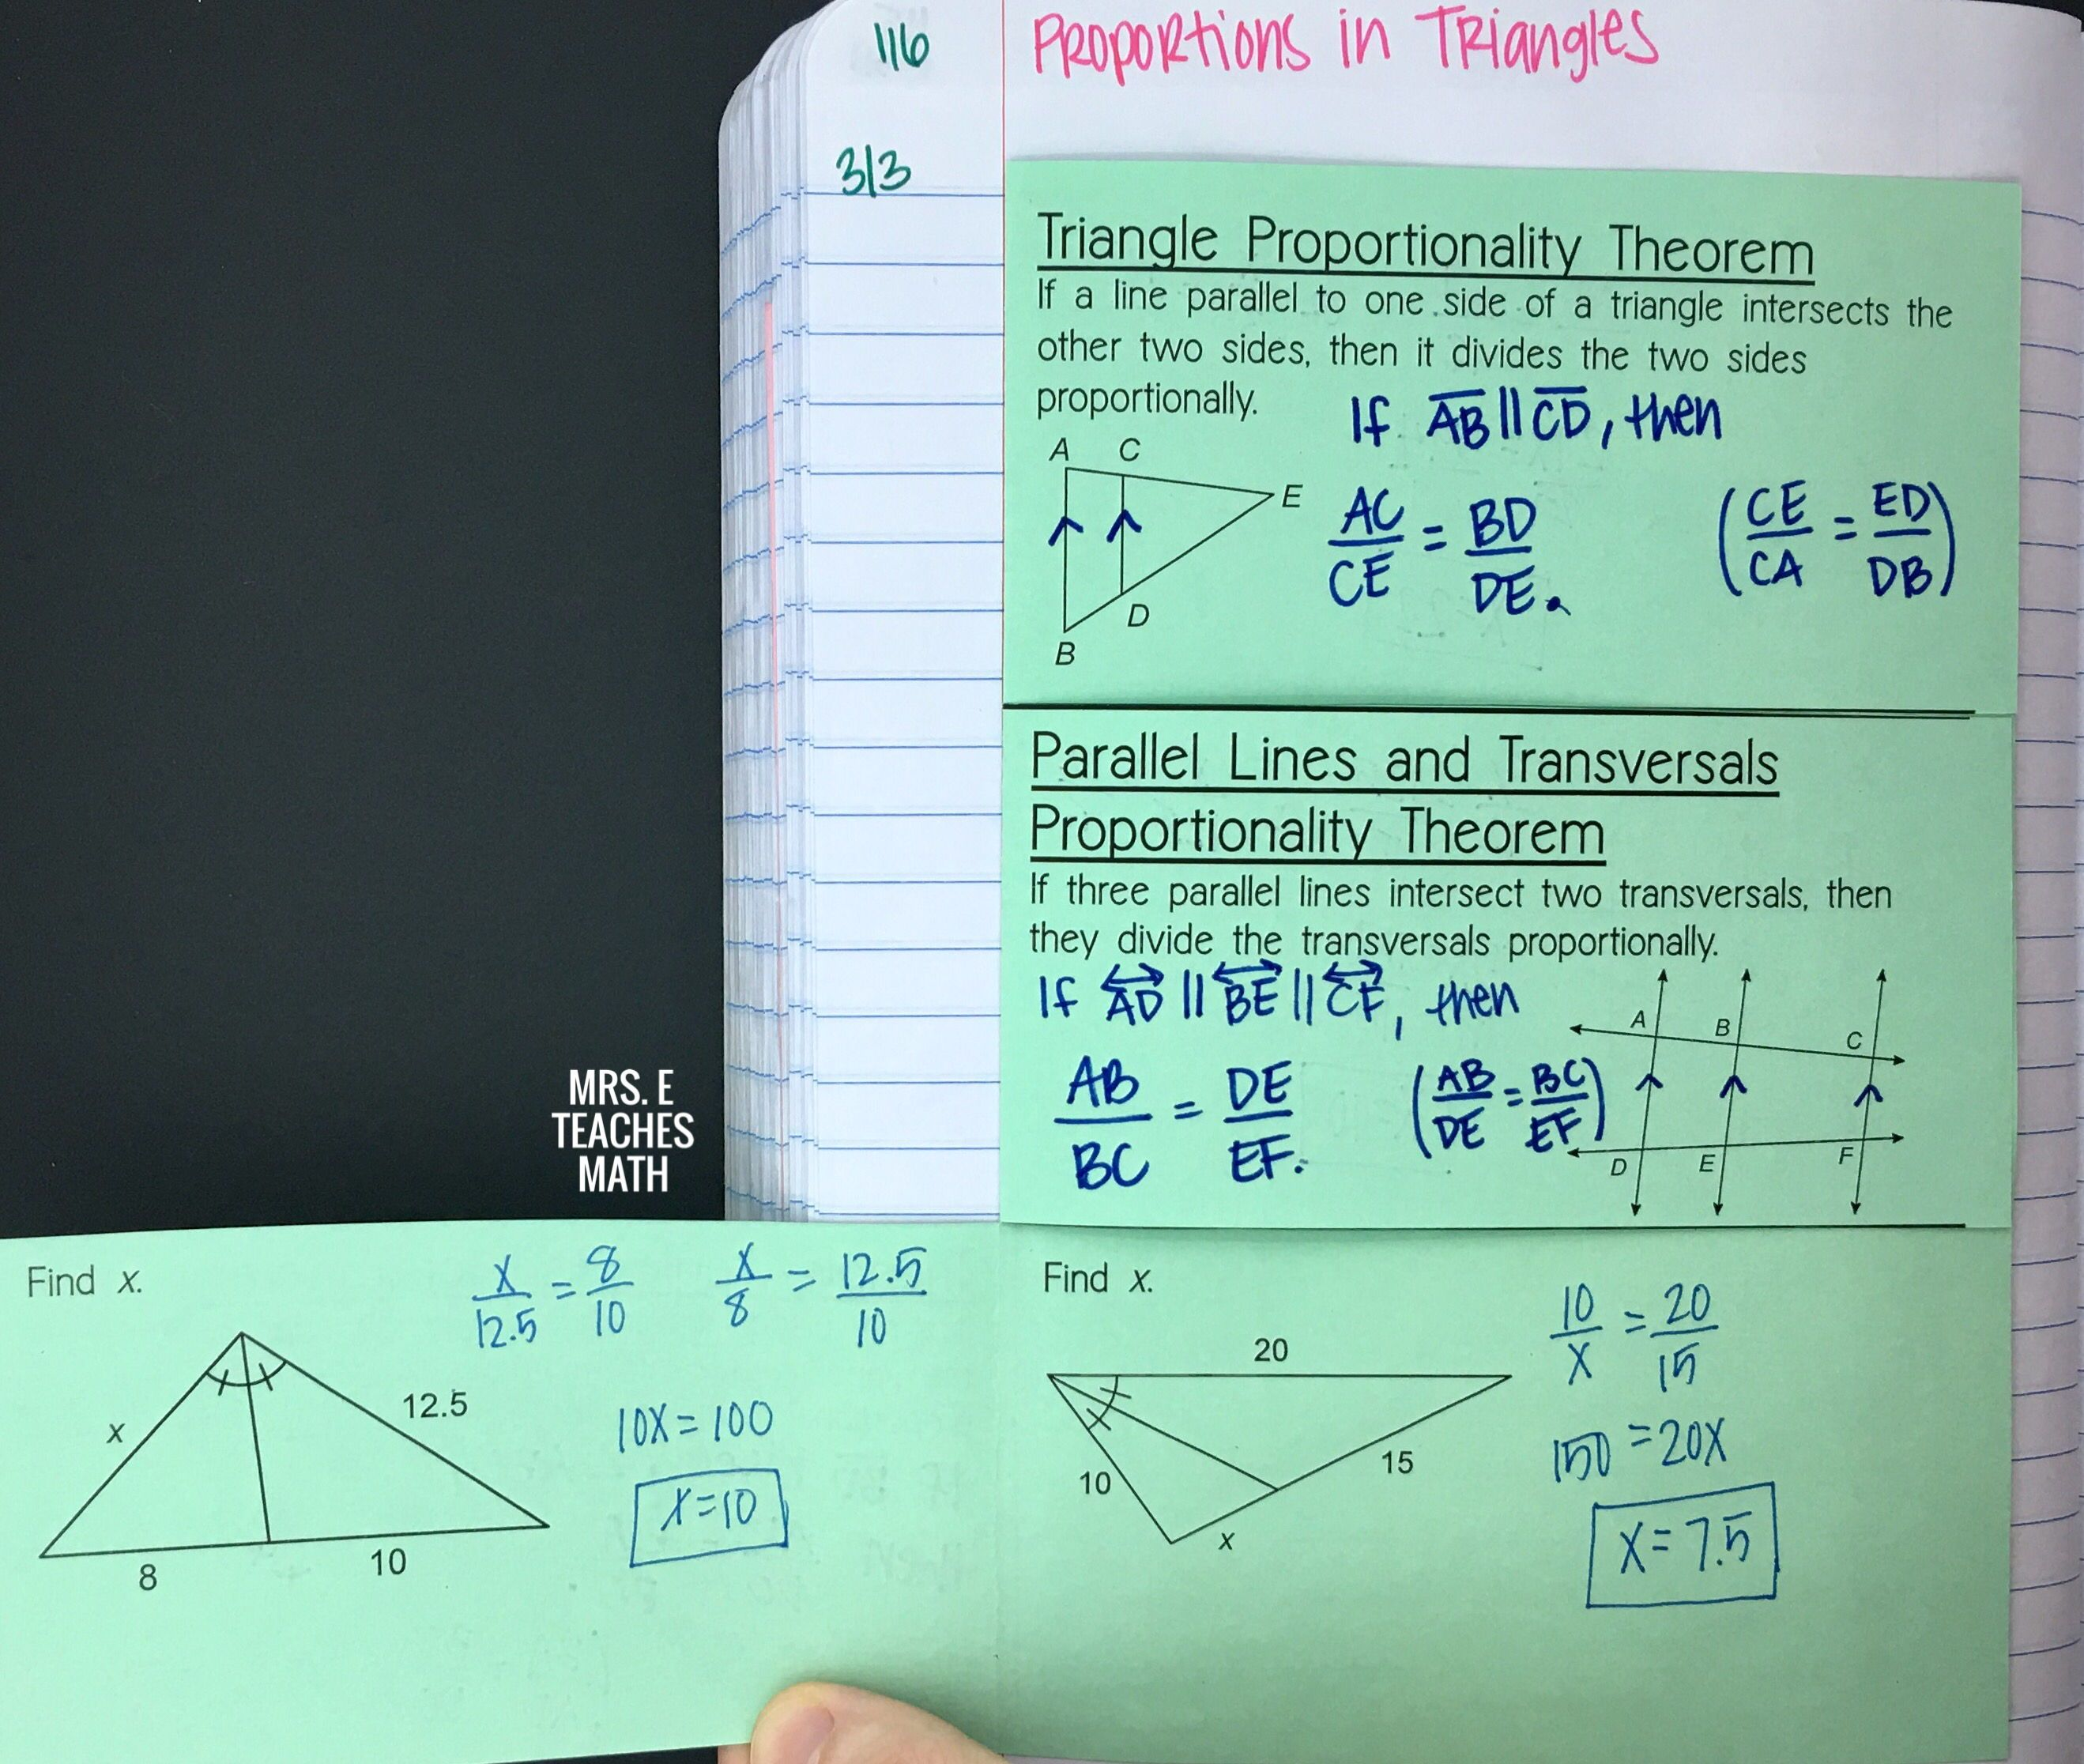 I Had My Students Put This Triangle Proportionality Theorems Foldable In Their Geometry Interactive No High School Math Lesson Plans Theorems Math Lesson Plans